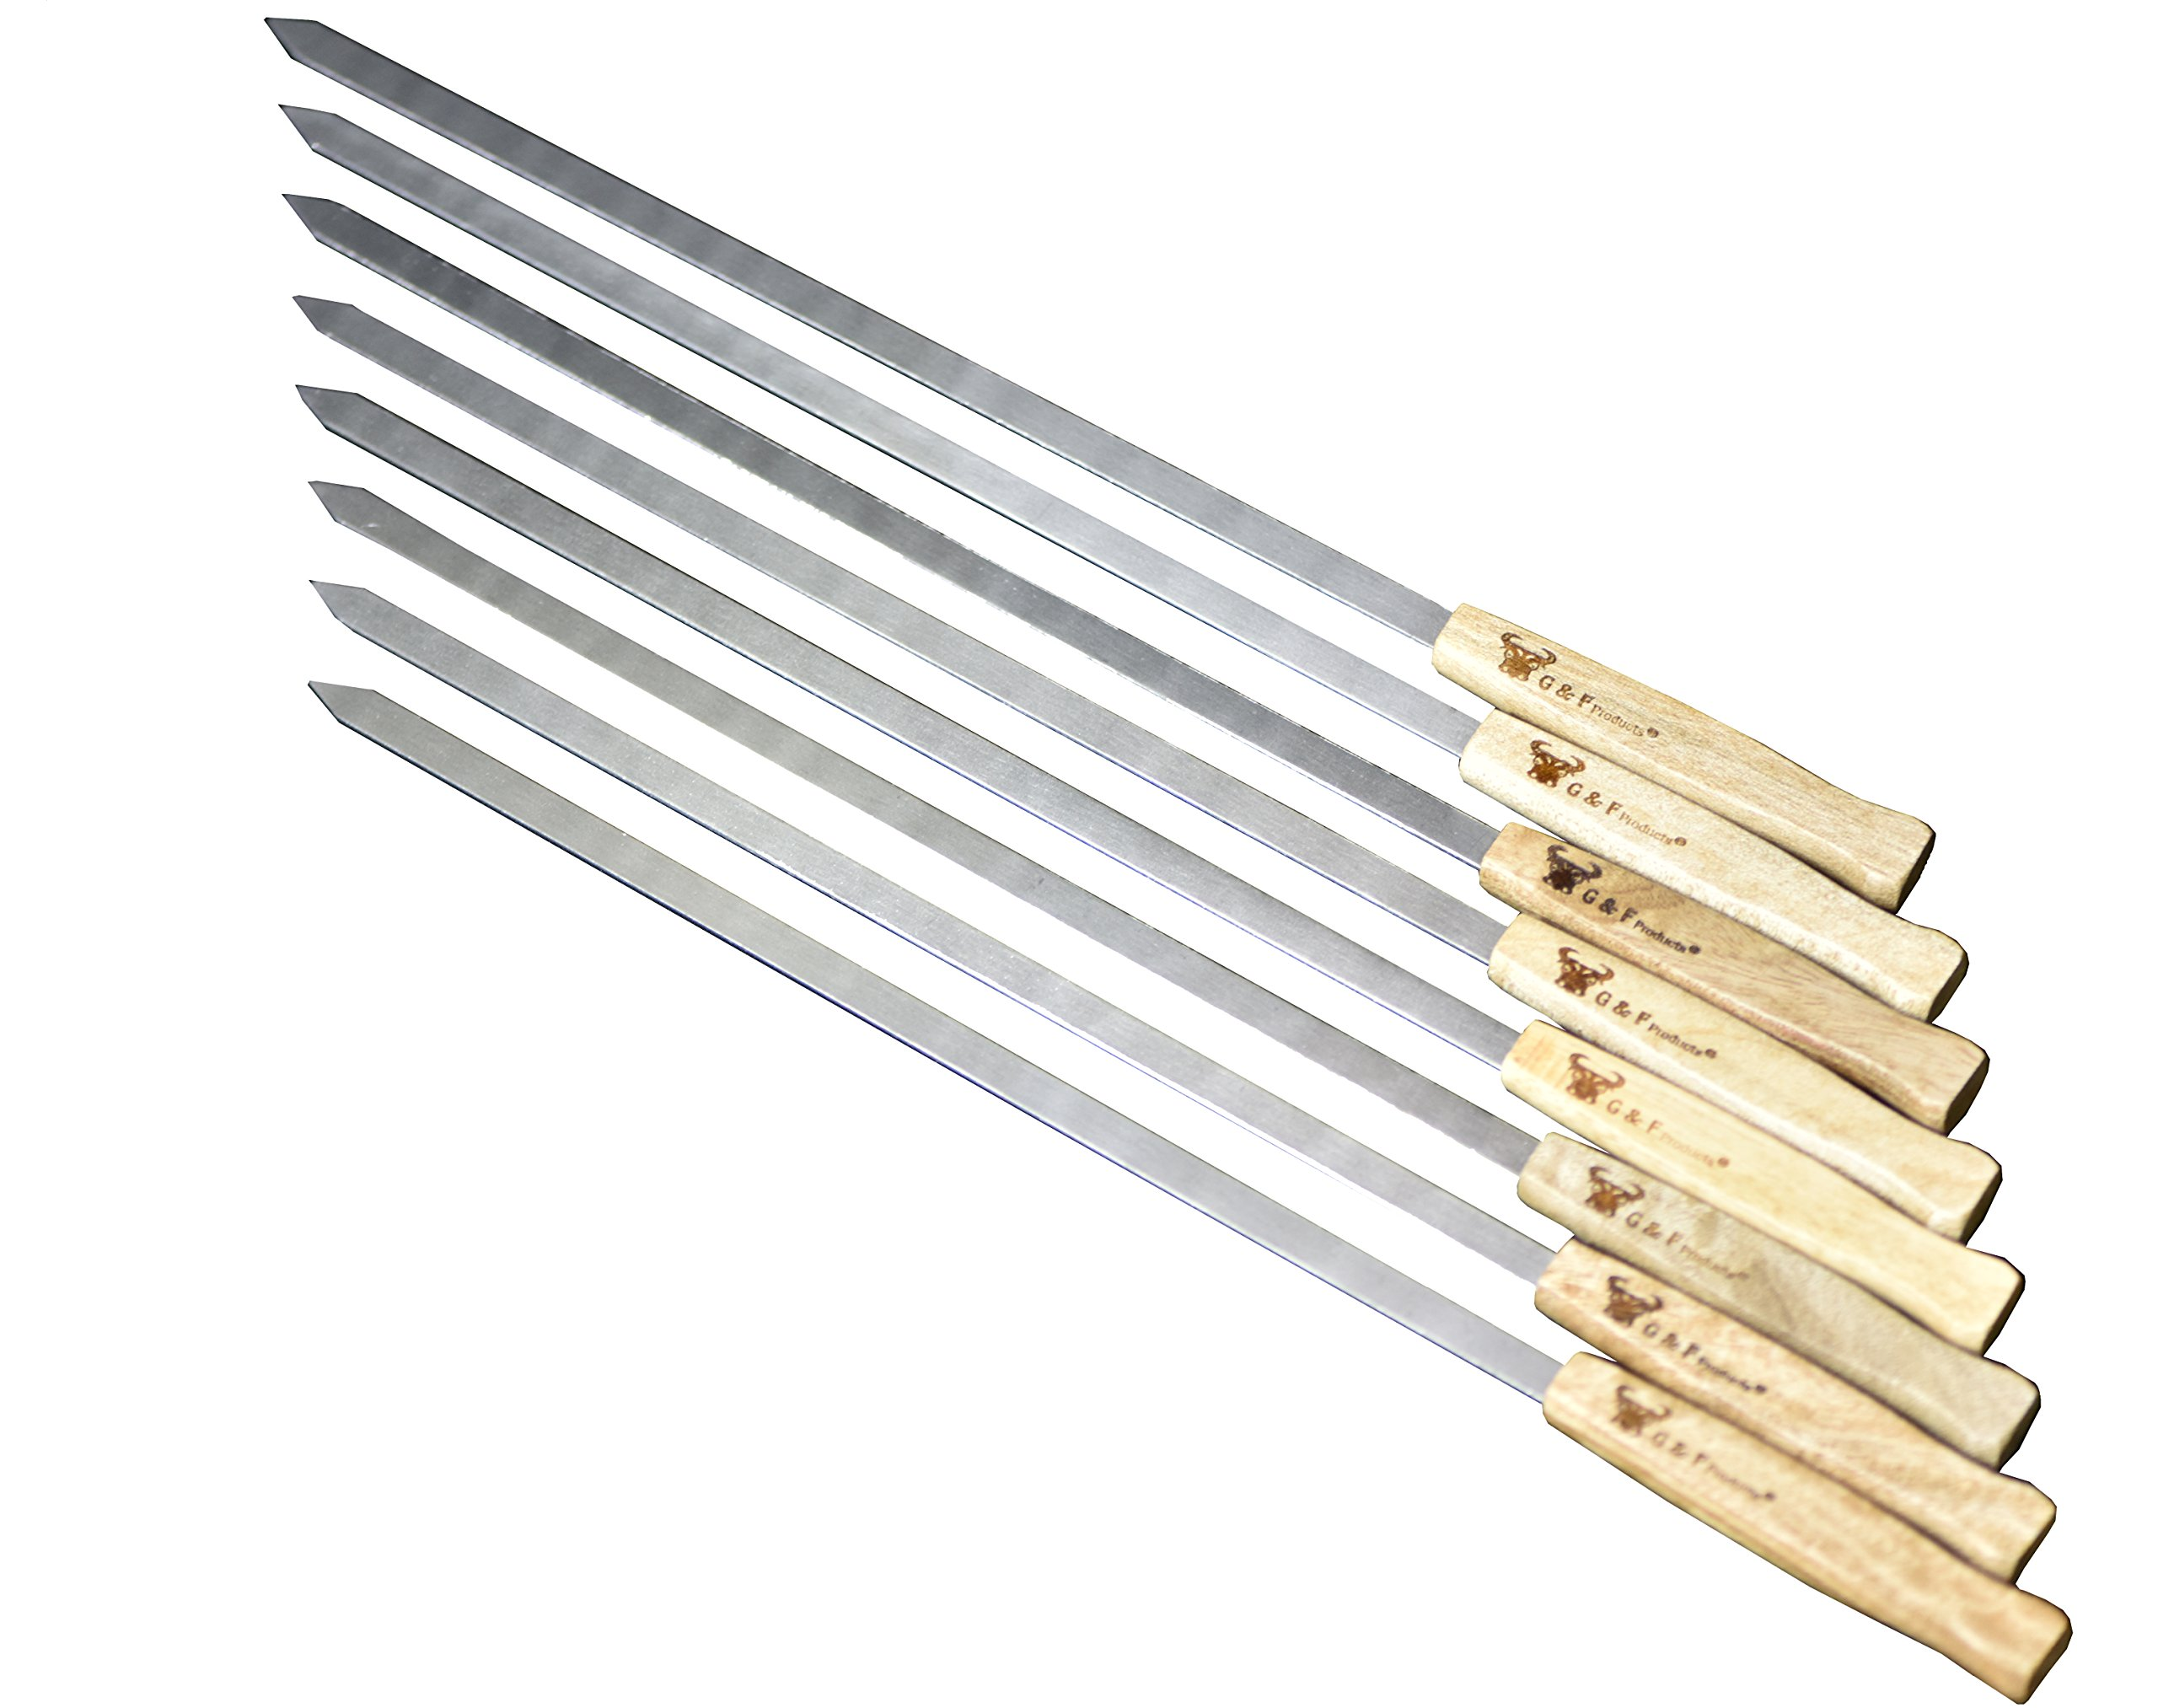 G & F Products 17-Inch Long, Large Stainless Steel Brazilian-Style BBQ Skewers, Kebab Kabob Skewers, Half-Inch Wide Blade, Set of 8, wth heavy duty Travel Bag (25618)